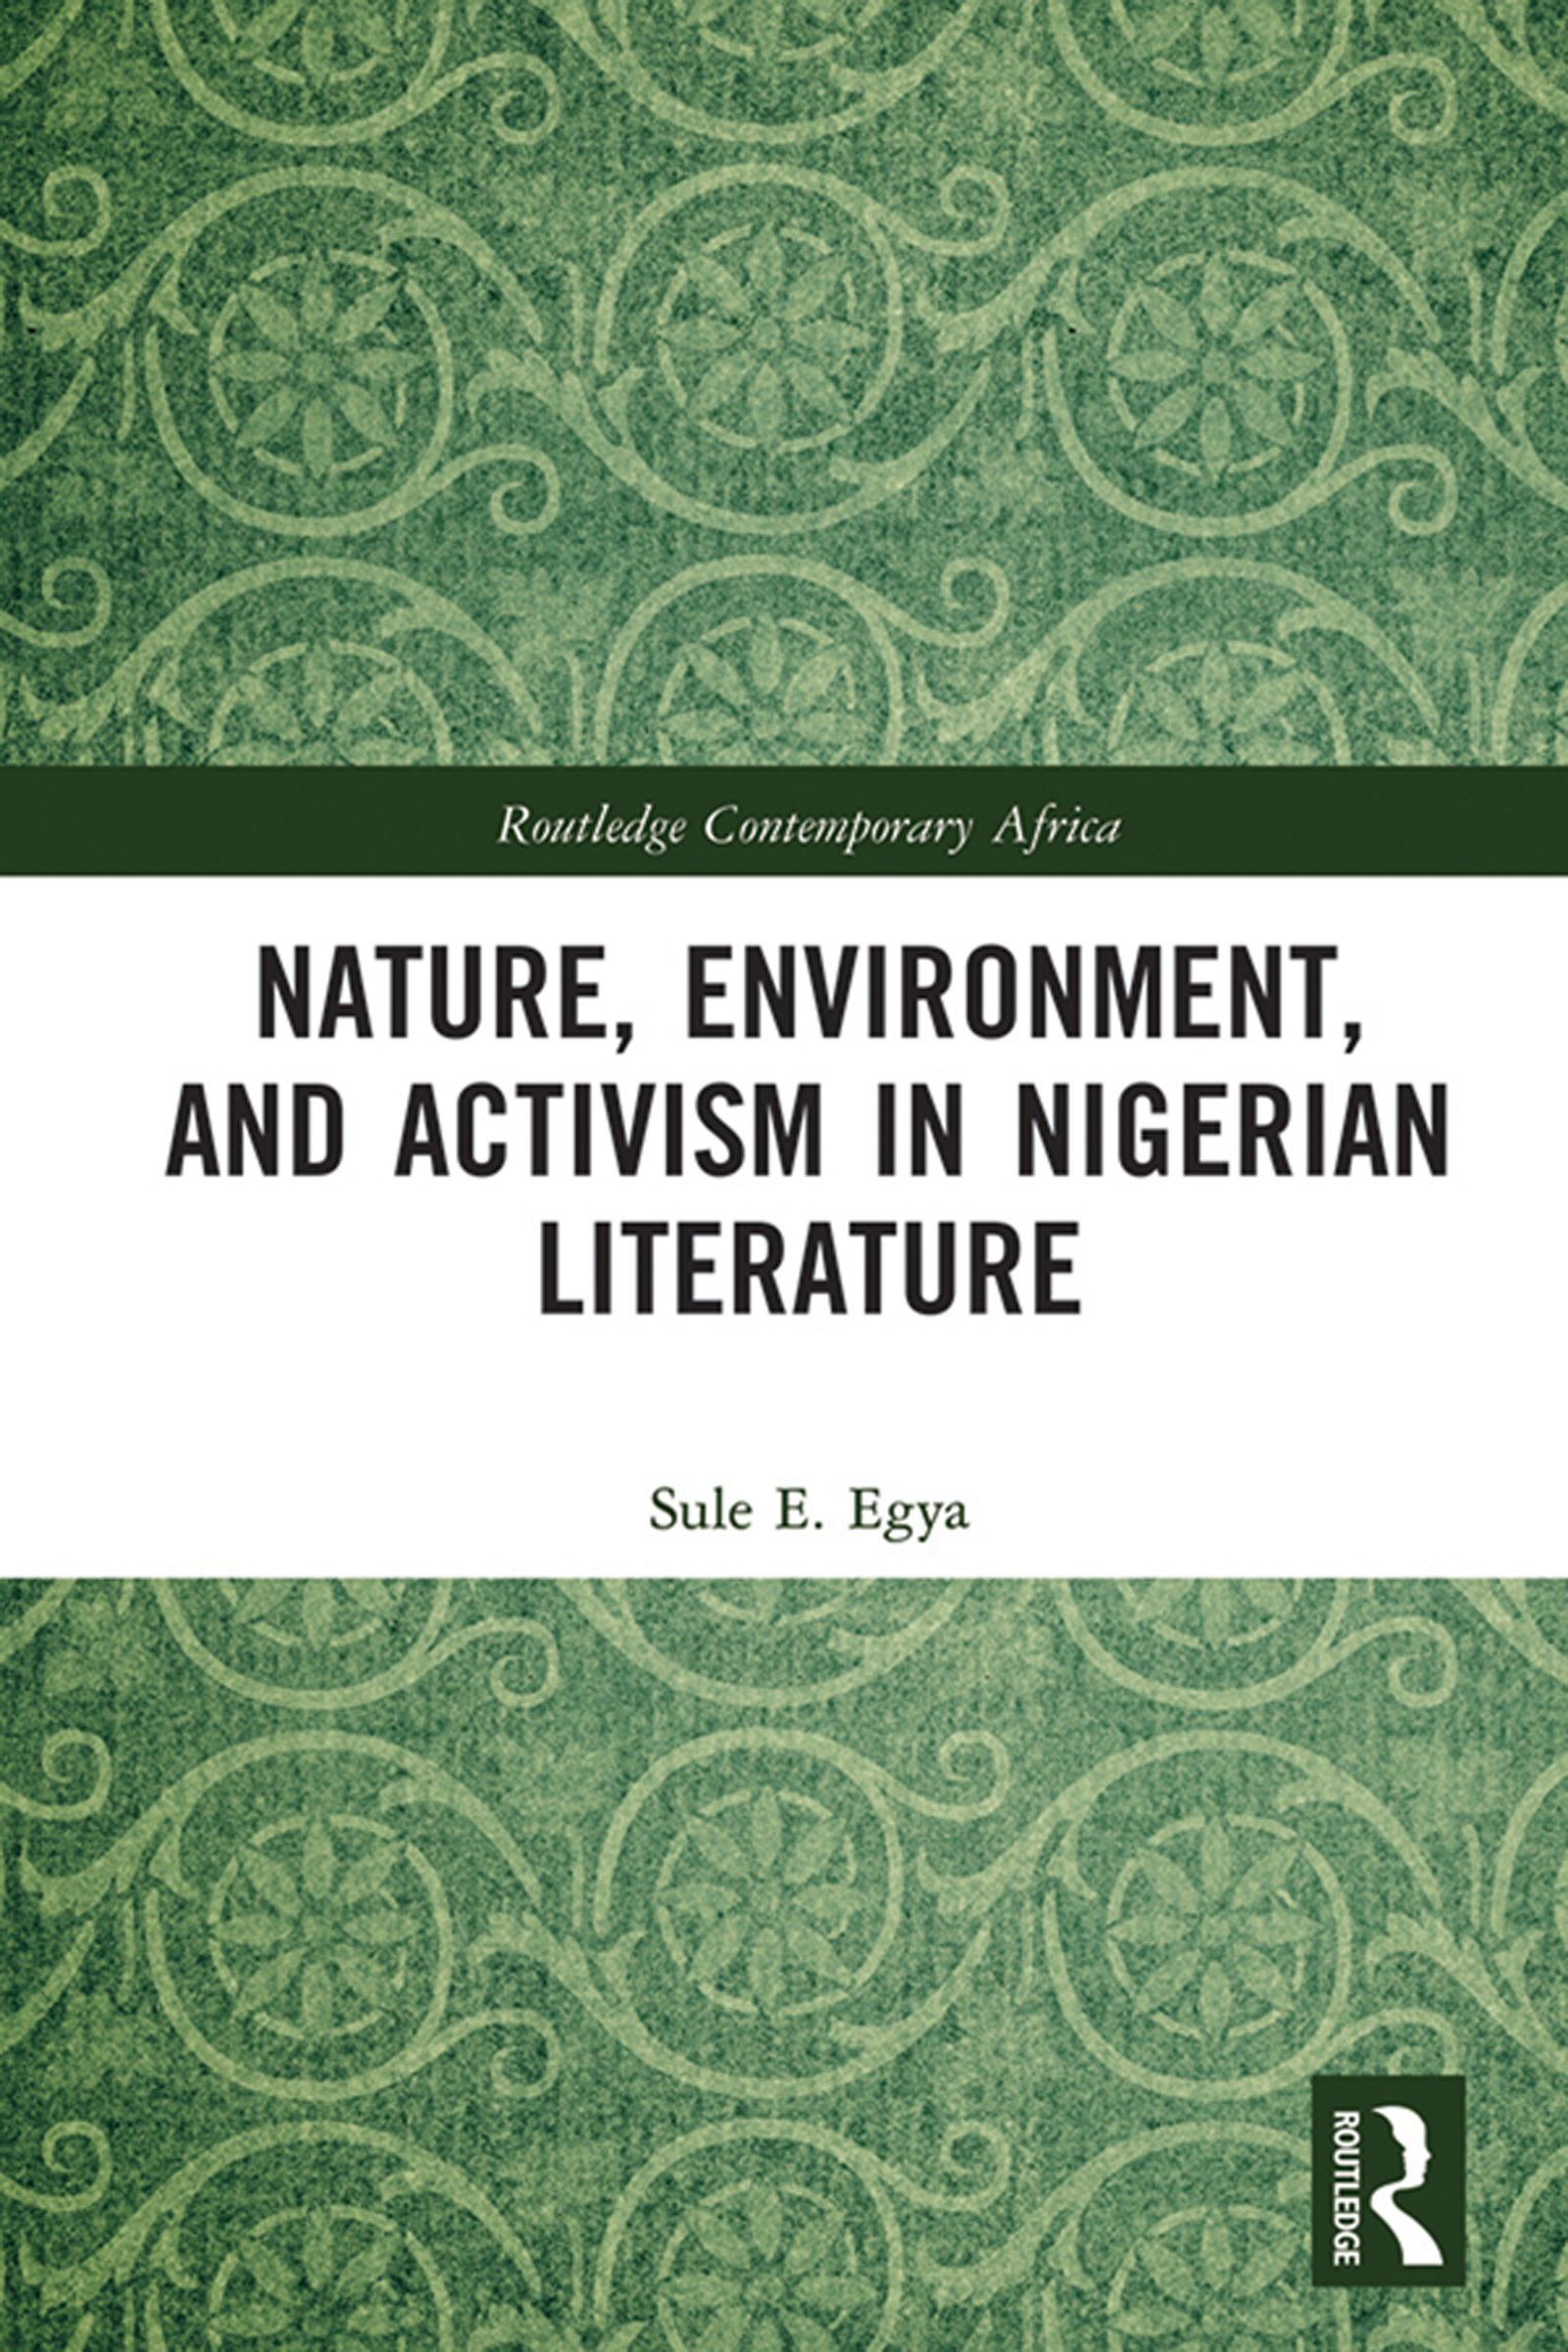 Nature, Environment, and Activism in Nigerian Literature book cover